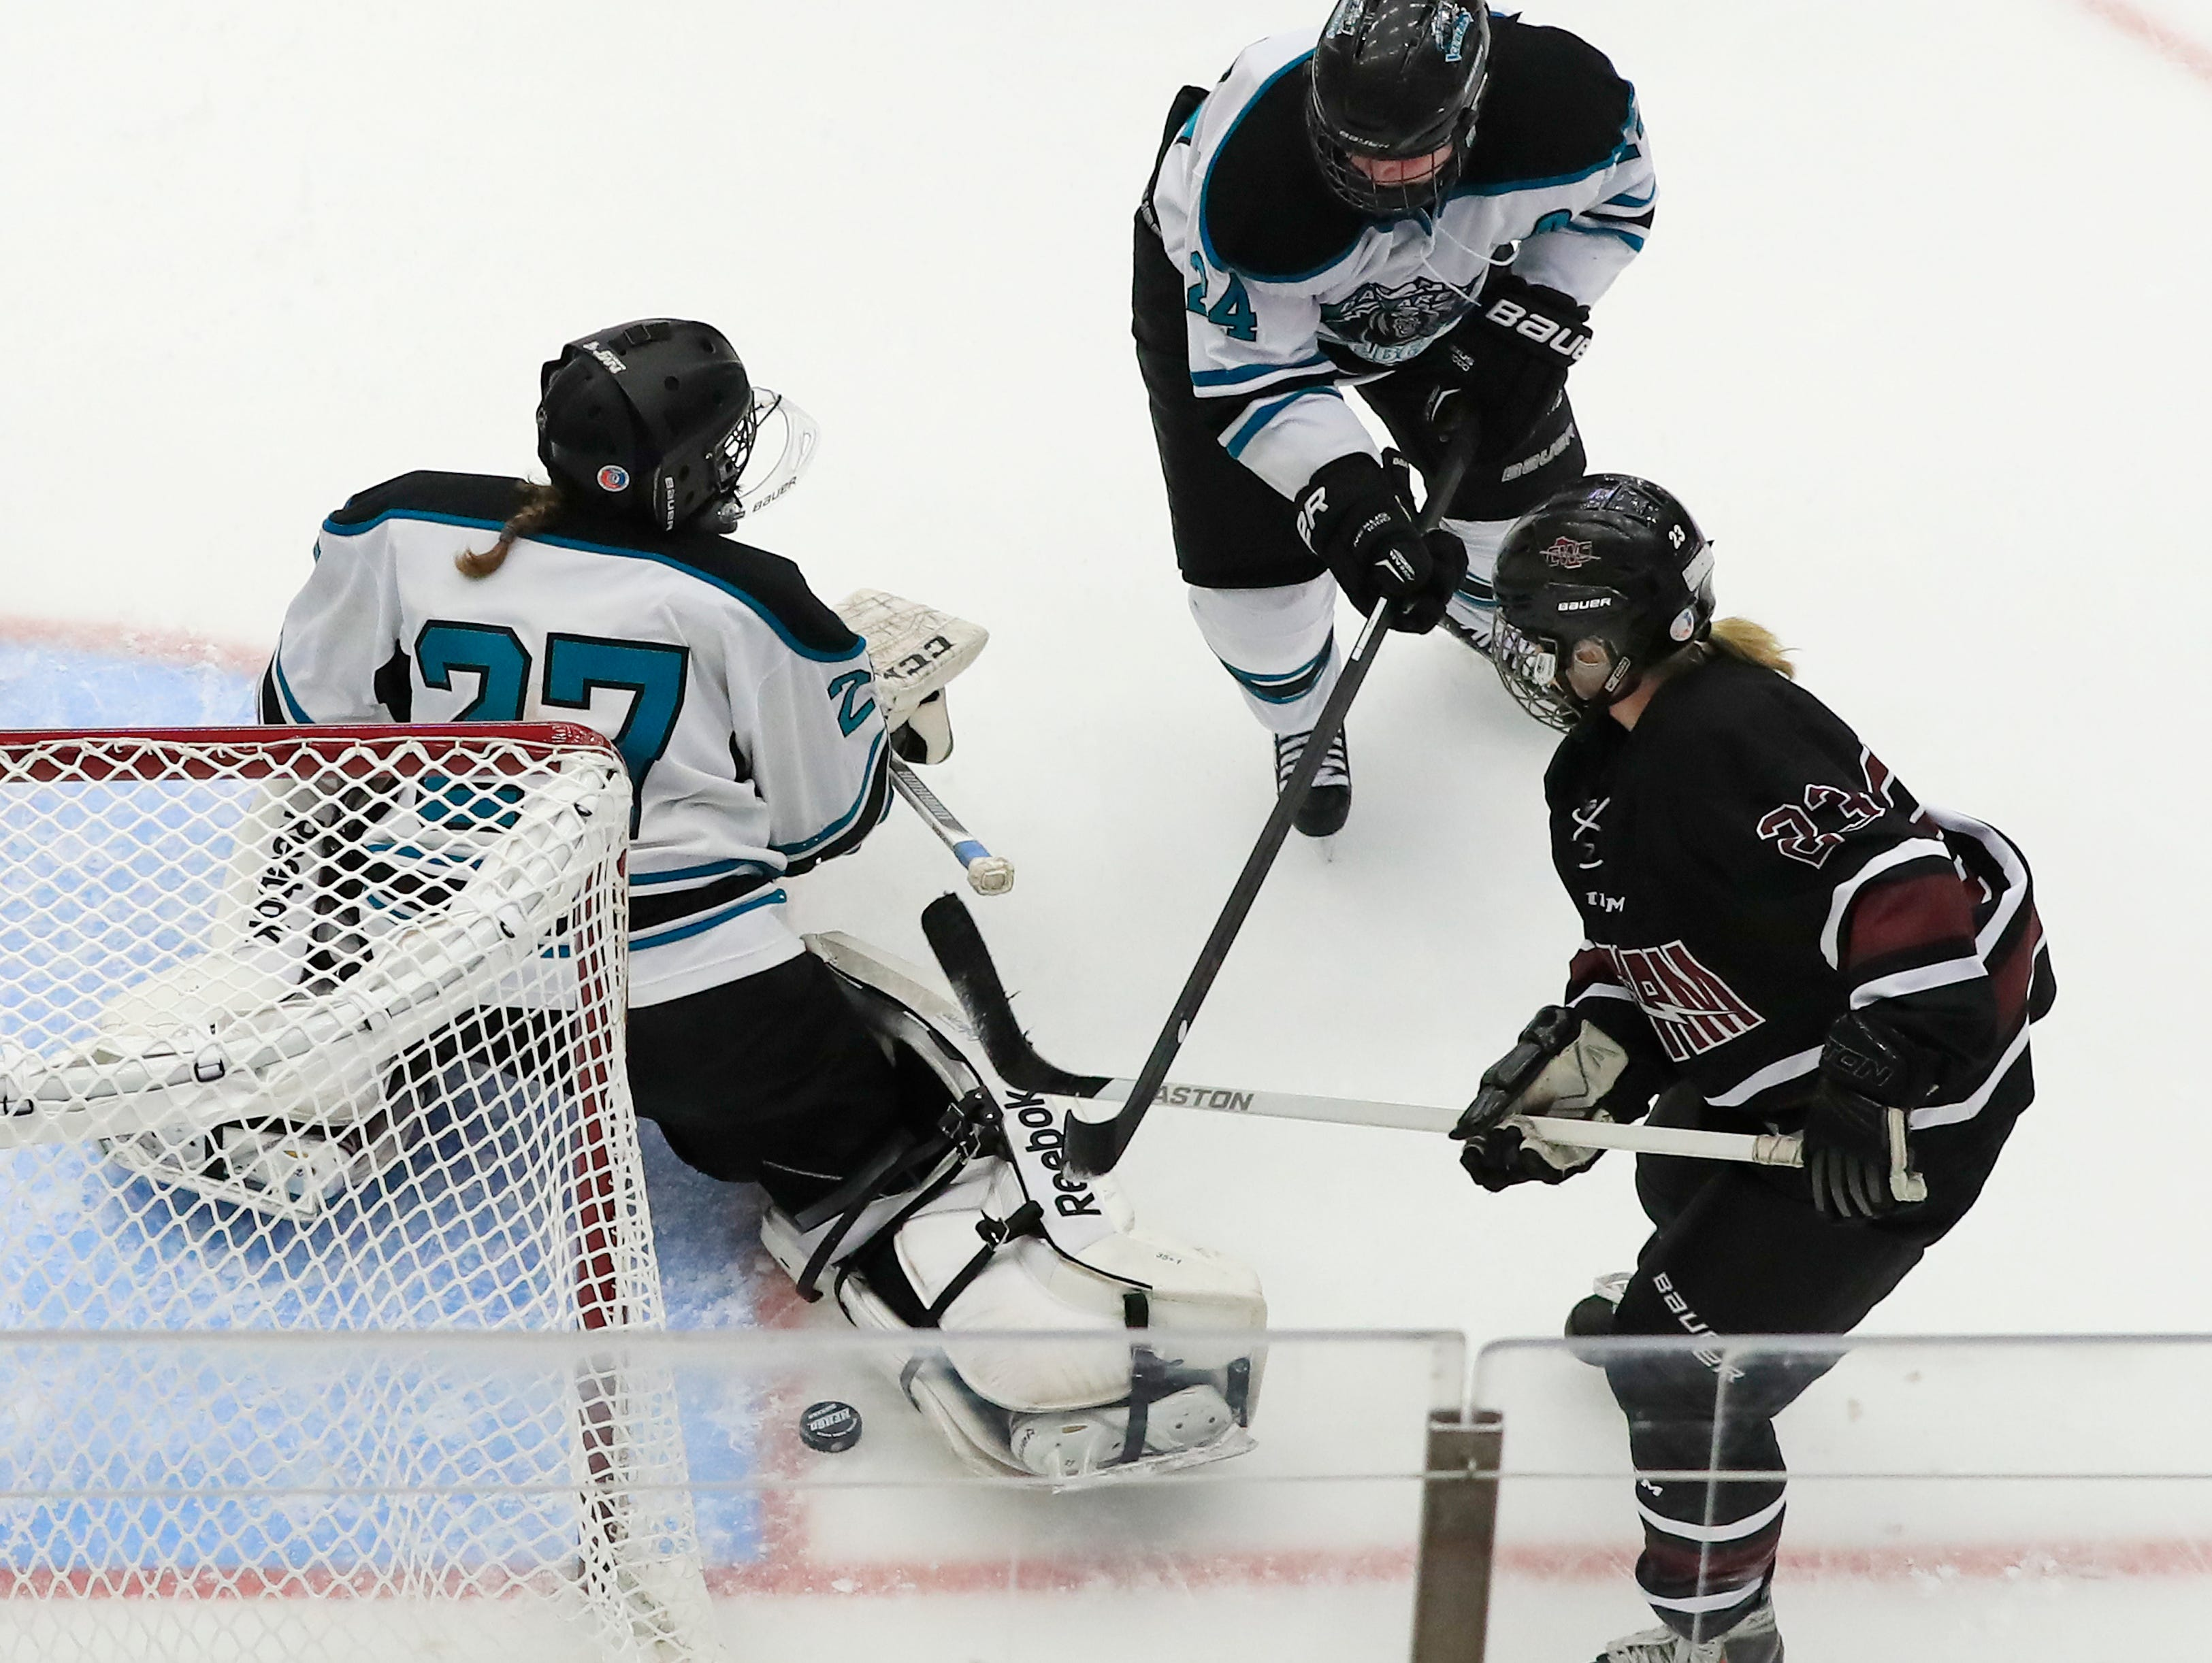 Bay Area Ice Bears defenseman Mia Dunning (24) clears the puck away from Bay Area Ice Bears defenseman Mia Dunning (24) after a save by Ice Bears goalie Ana Holzbach (27) in the championship match at the 2017 State Hockey Tournament at Veterans Memorial Coliseum on Saturday, March 4, 2017, in Madison, Wis. The Storm won the match 2-1 in overtime. Adam Wesley/USA TODAY NETWORK-Wisconsin